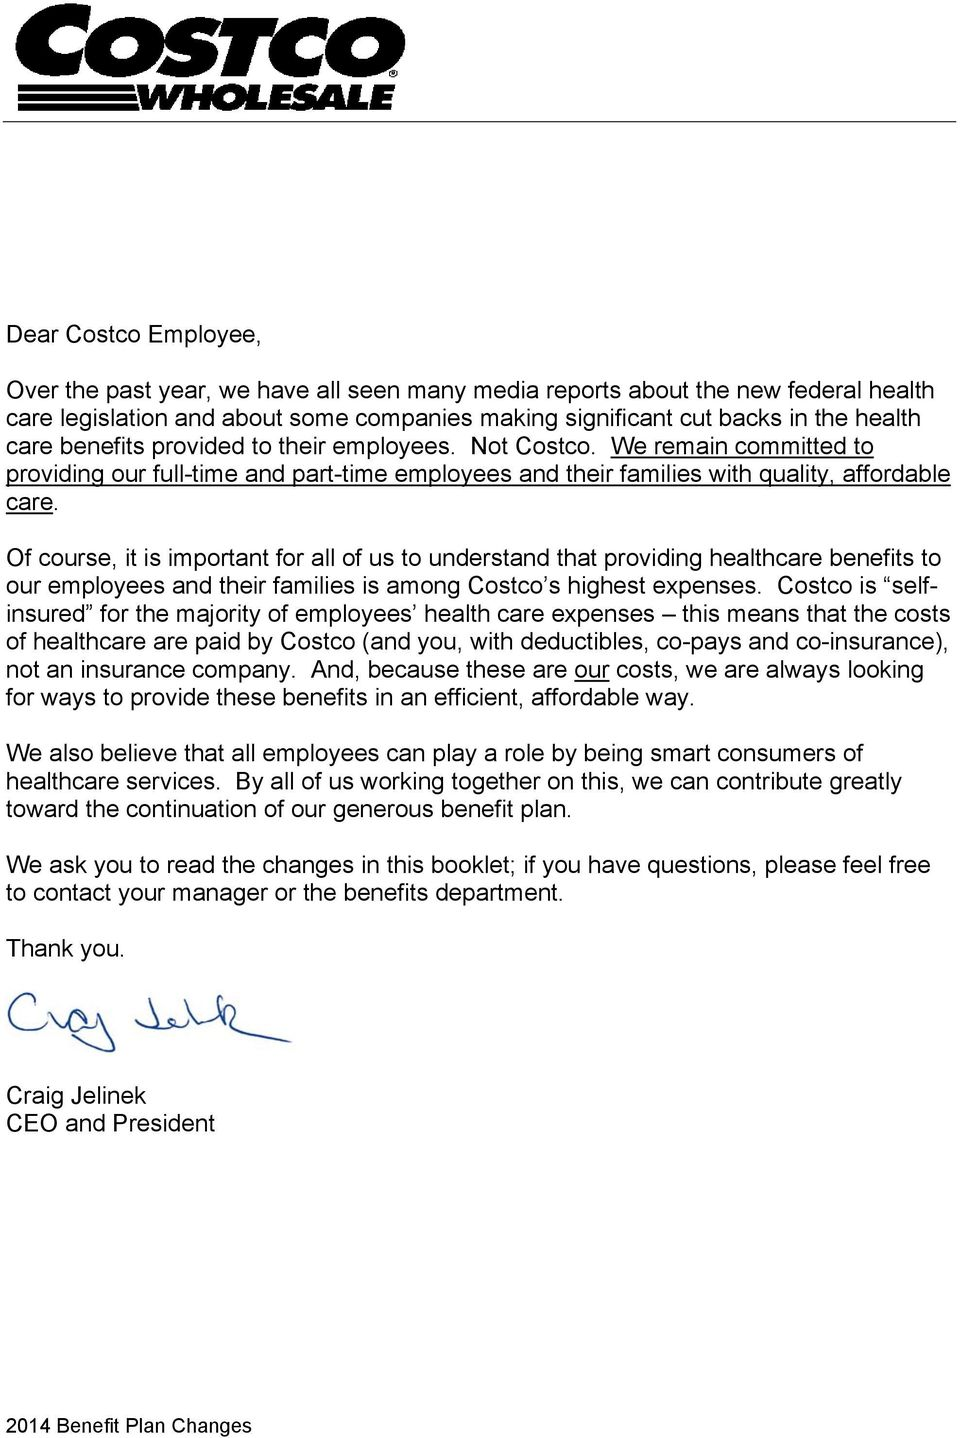 2014 BENEFIT PLAN CHANGES Costco Employee Benefits Program - PDF